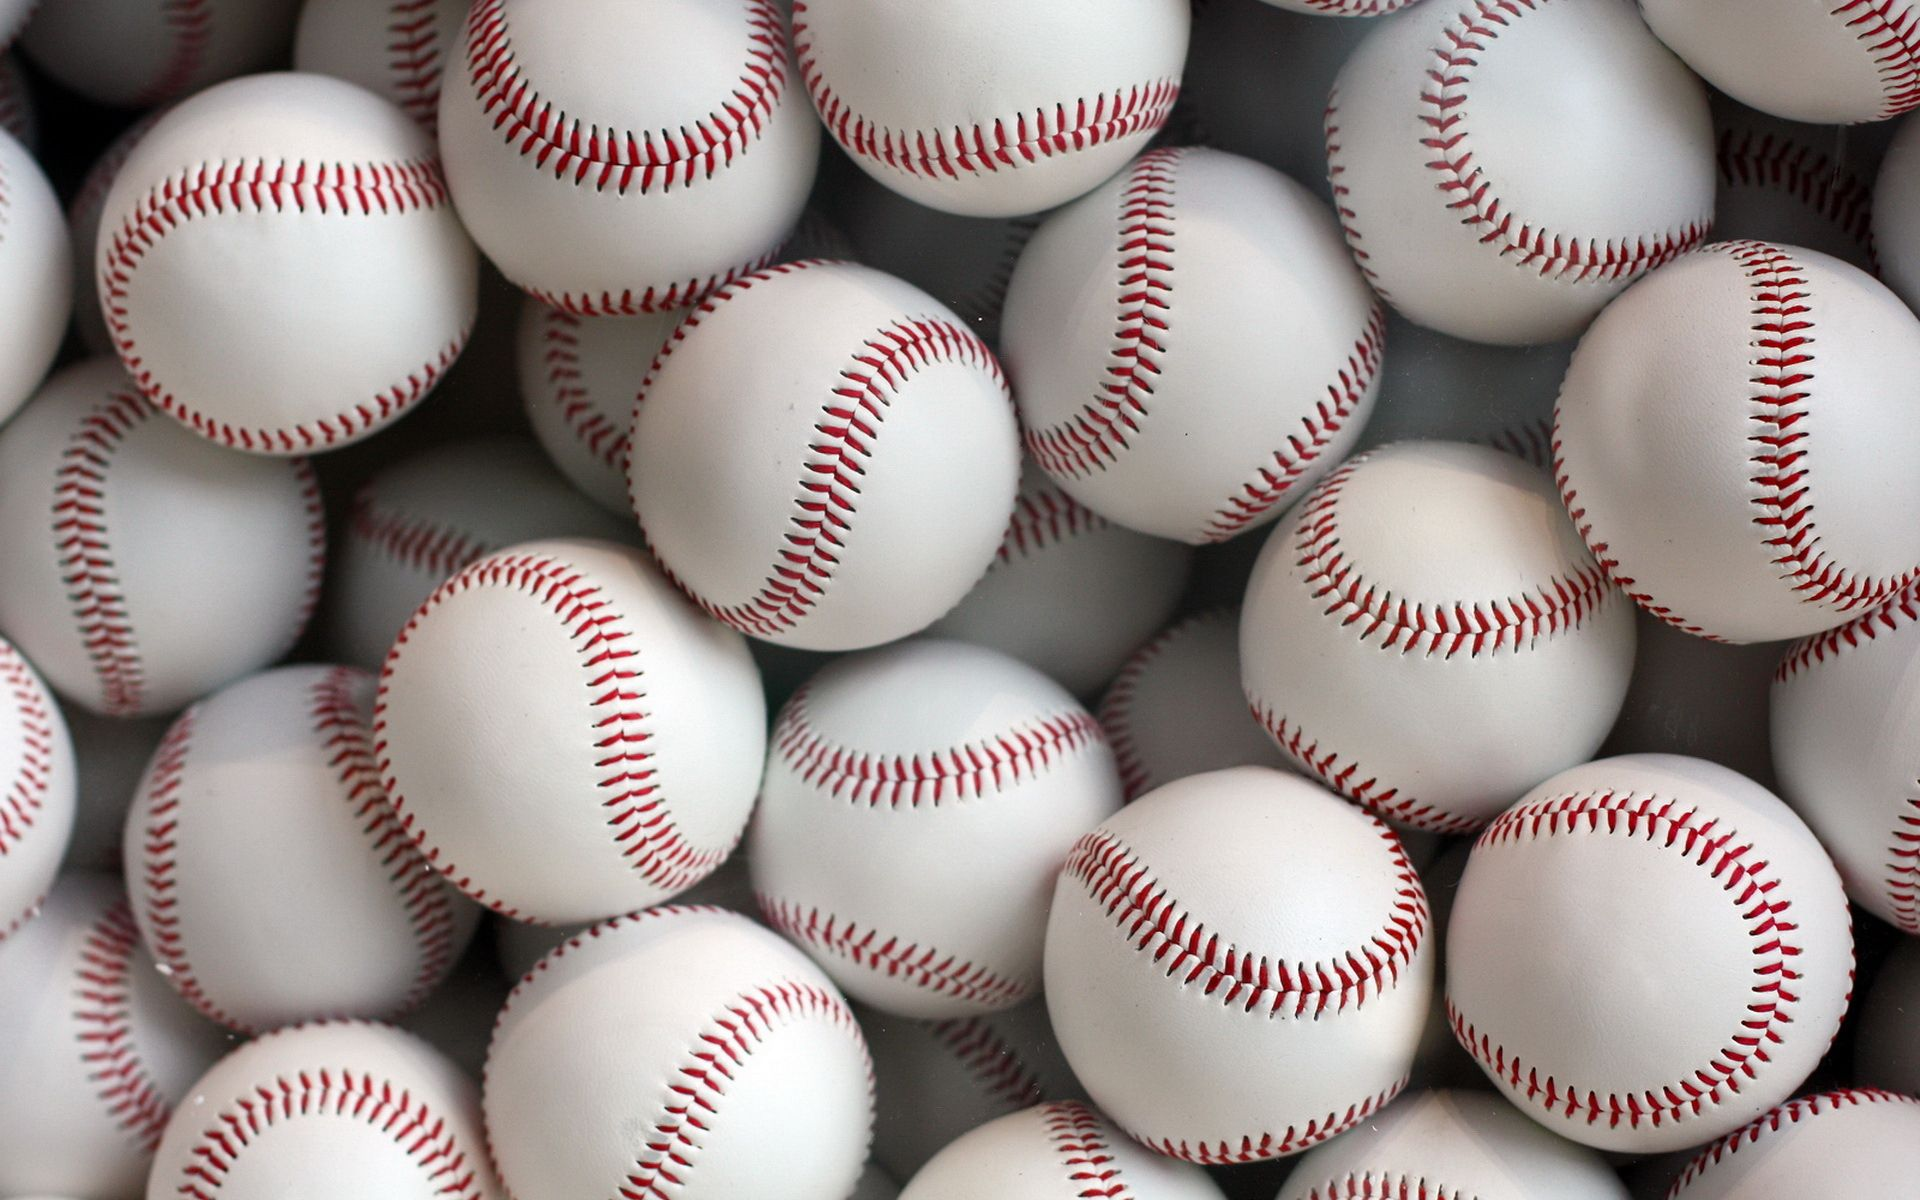 baseball wallpaper Baseball wallpaper, Baseball balls